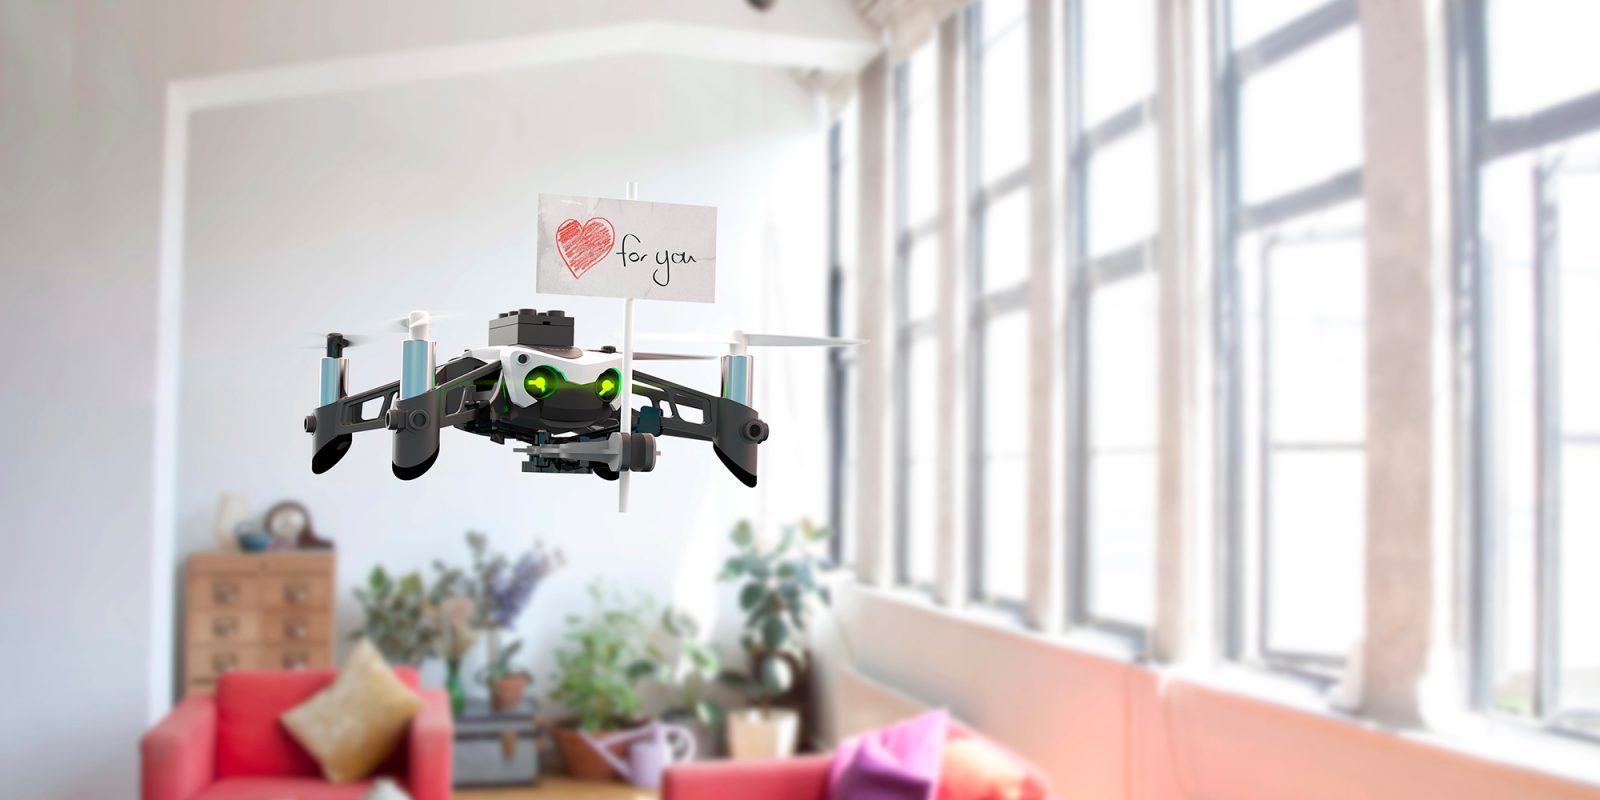 Parrot Combines With Tynker For New Mambo Code Drone Bundle